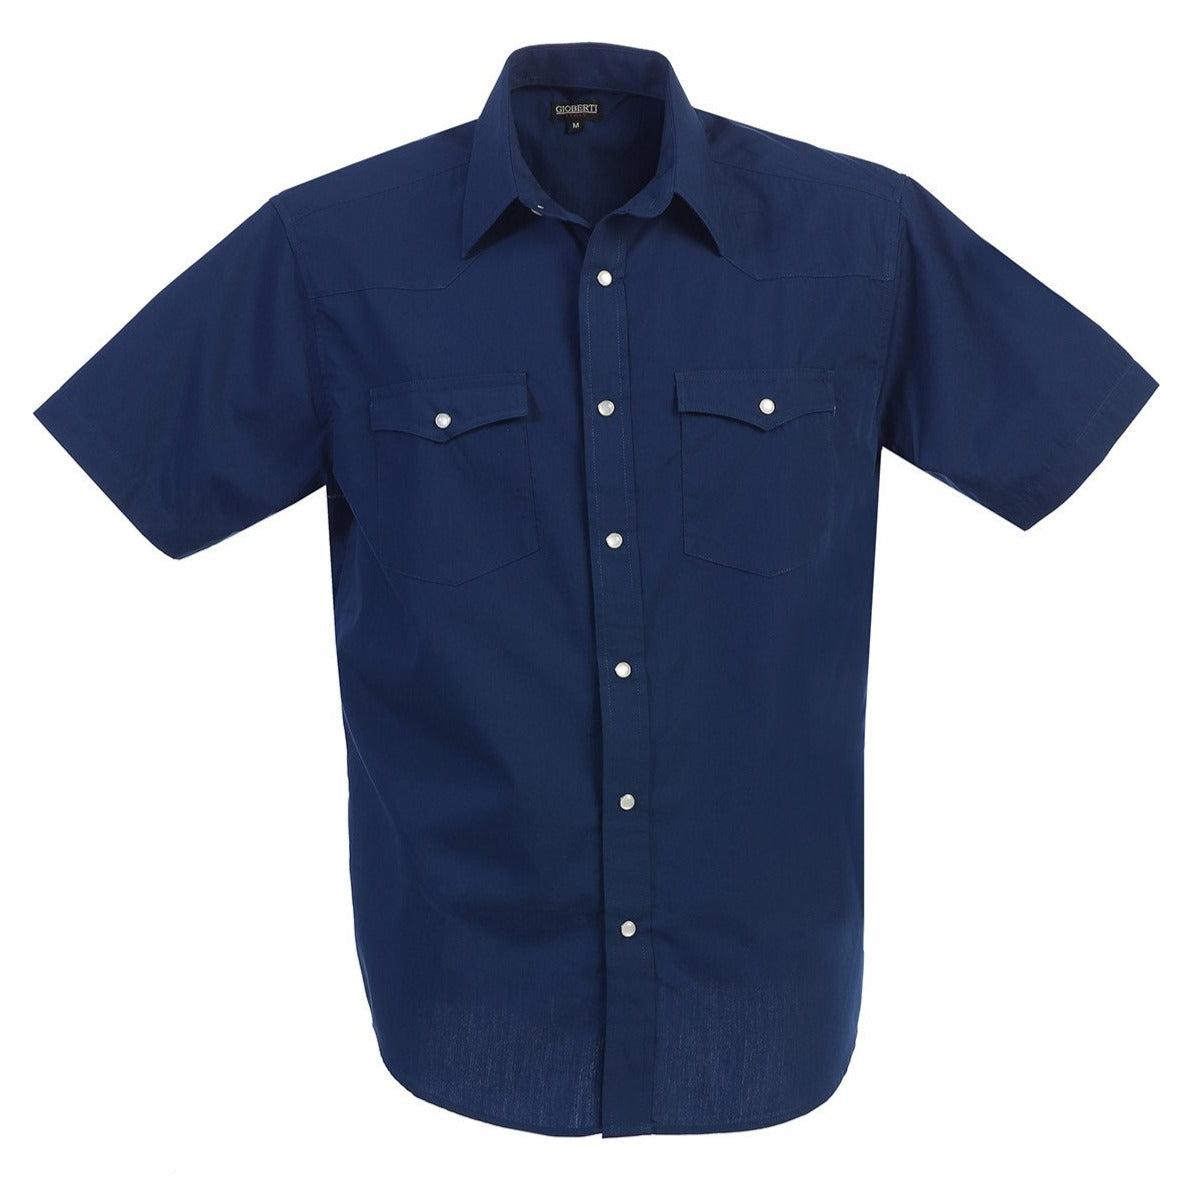 Western Classic Pearl Snap Shirt in Navy MEN